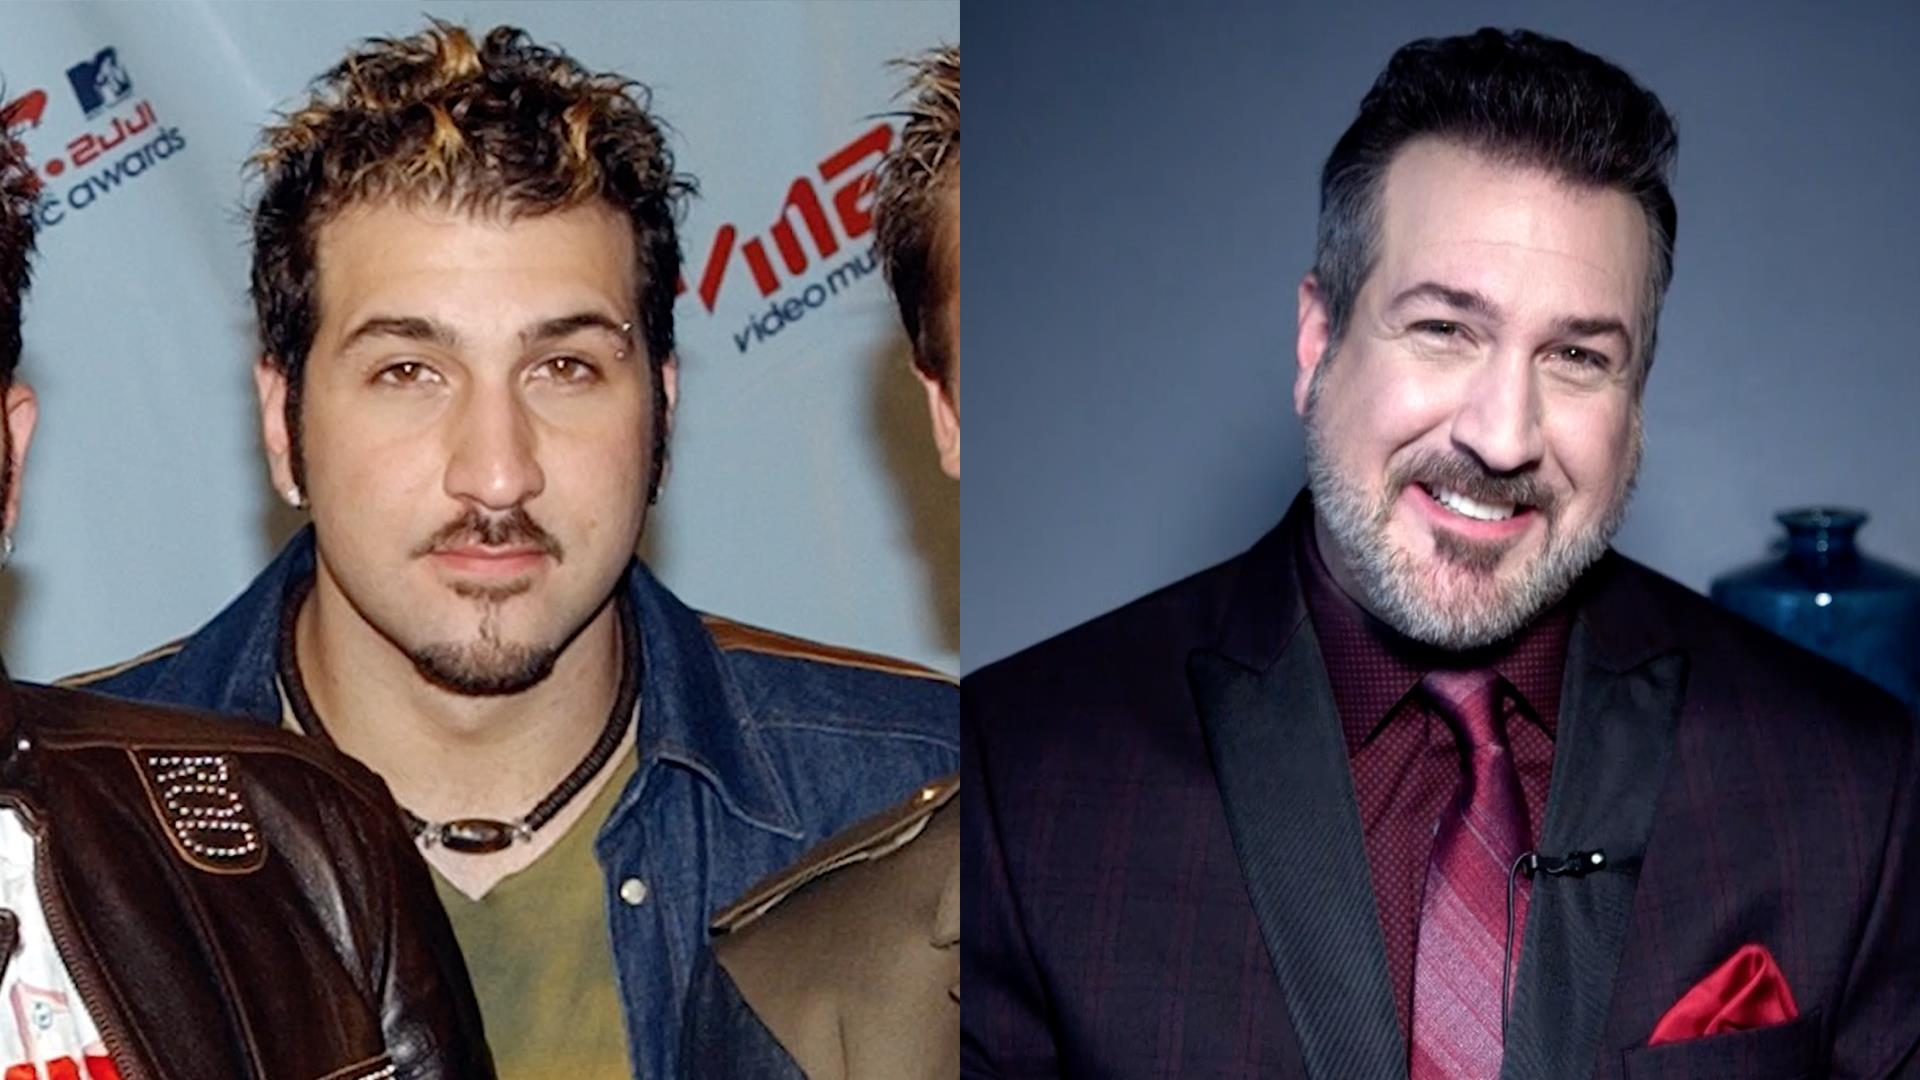 Joey Fatone reveals 1st impressions of 'N Sync bandmates — and funniest fan story